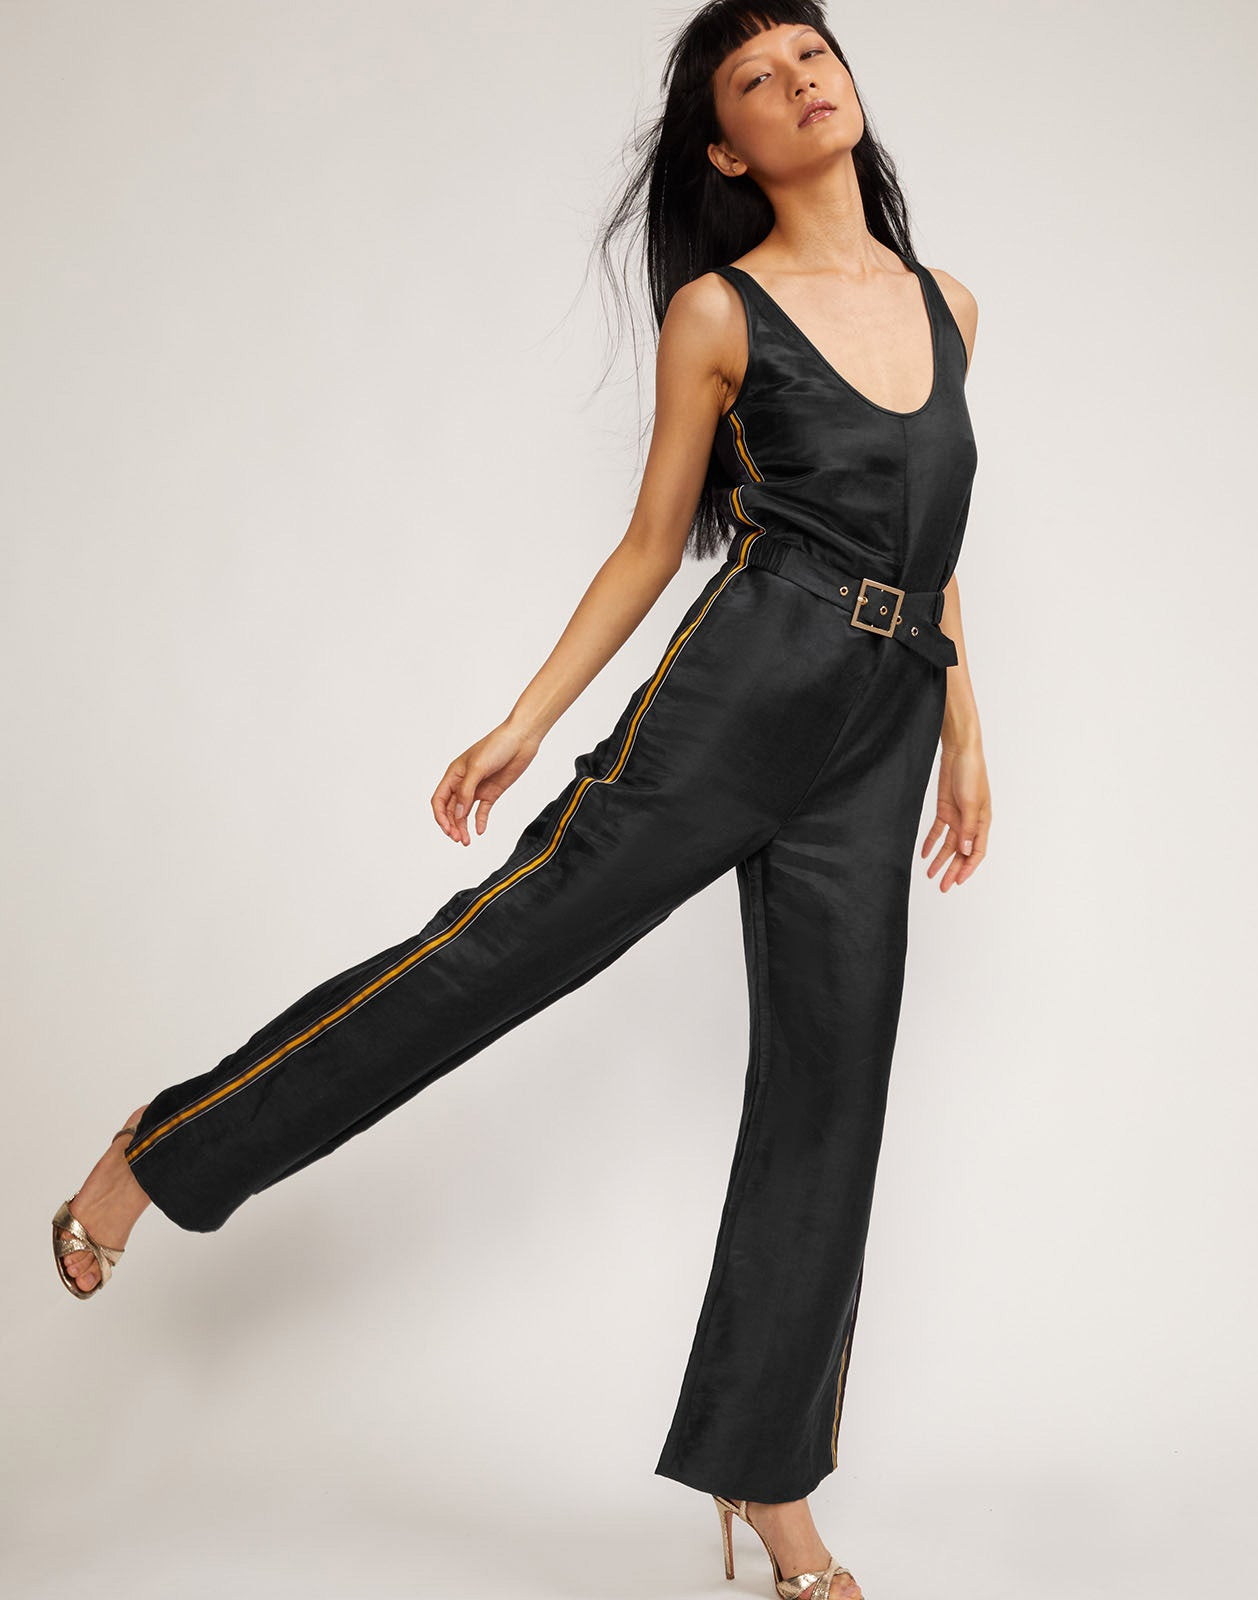 Model with leg swinging back in the black silk linen Dylam jumpsuit with belted waist.